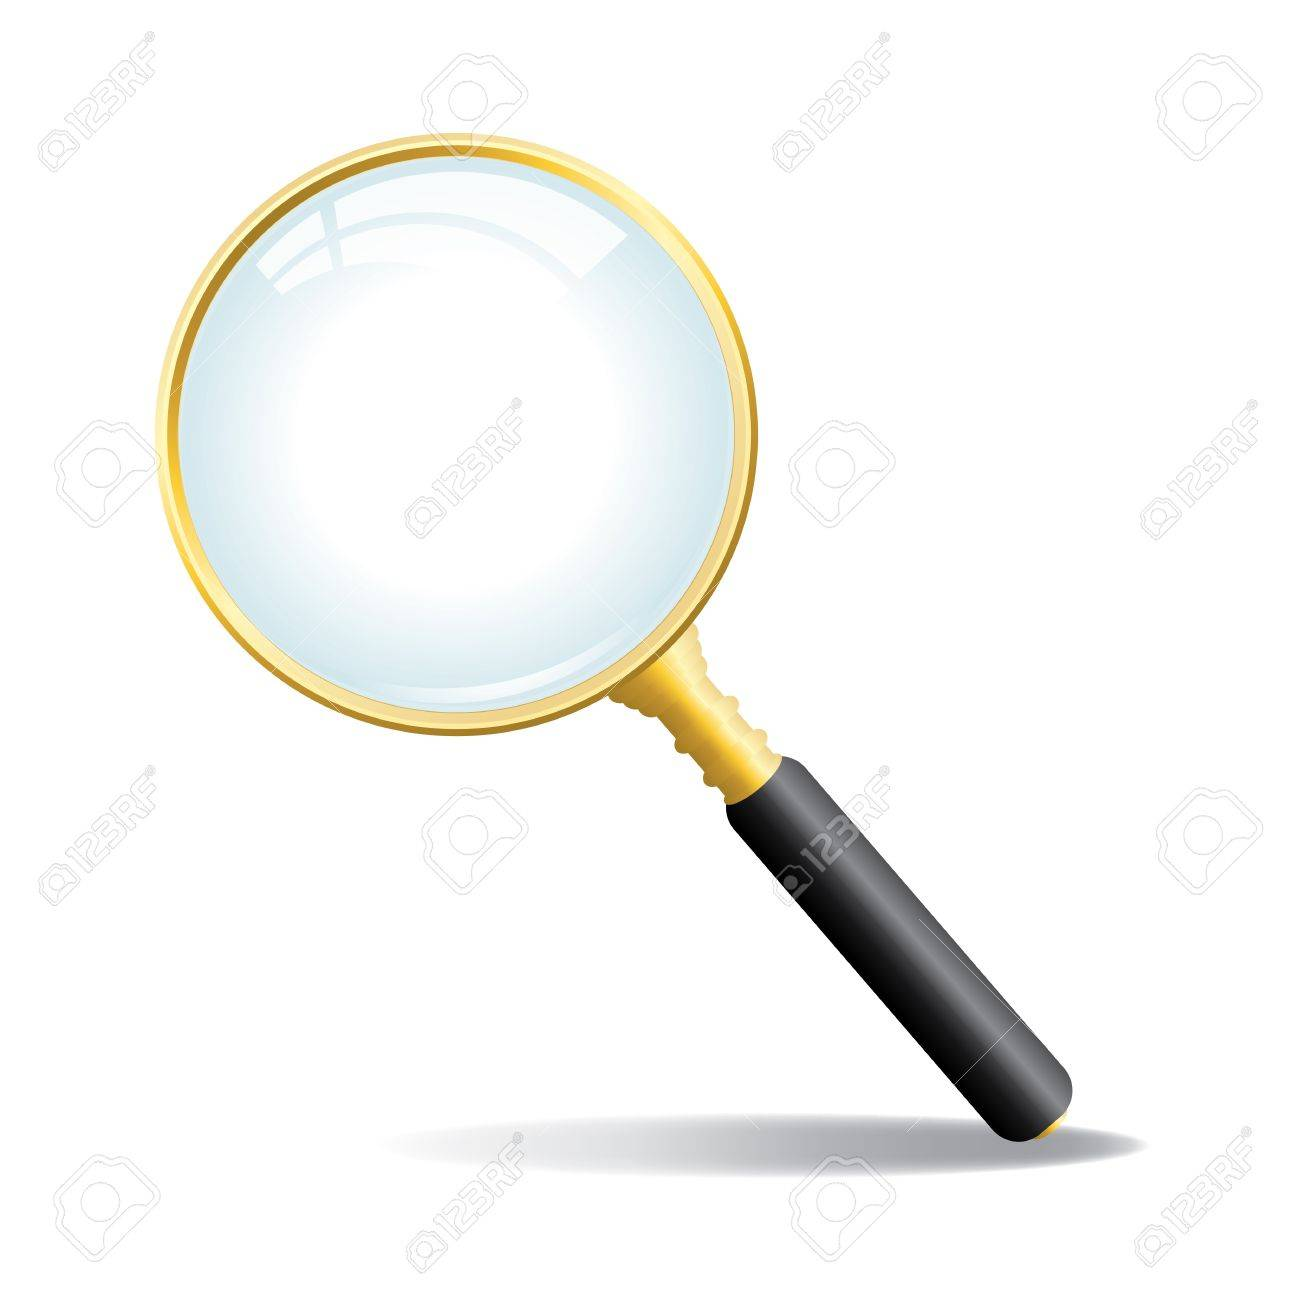 A gold colored magnifying glass with black handle Stock Vector - 18223575